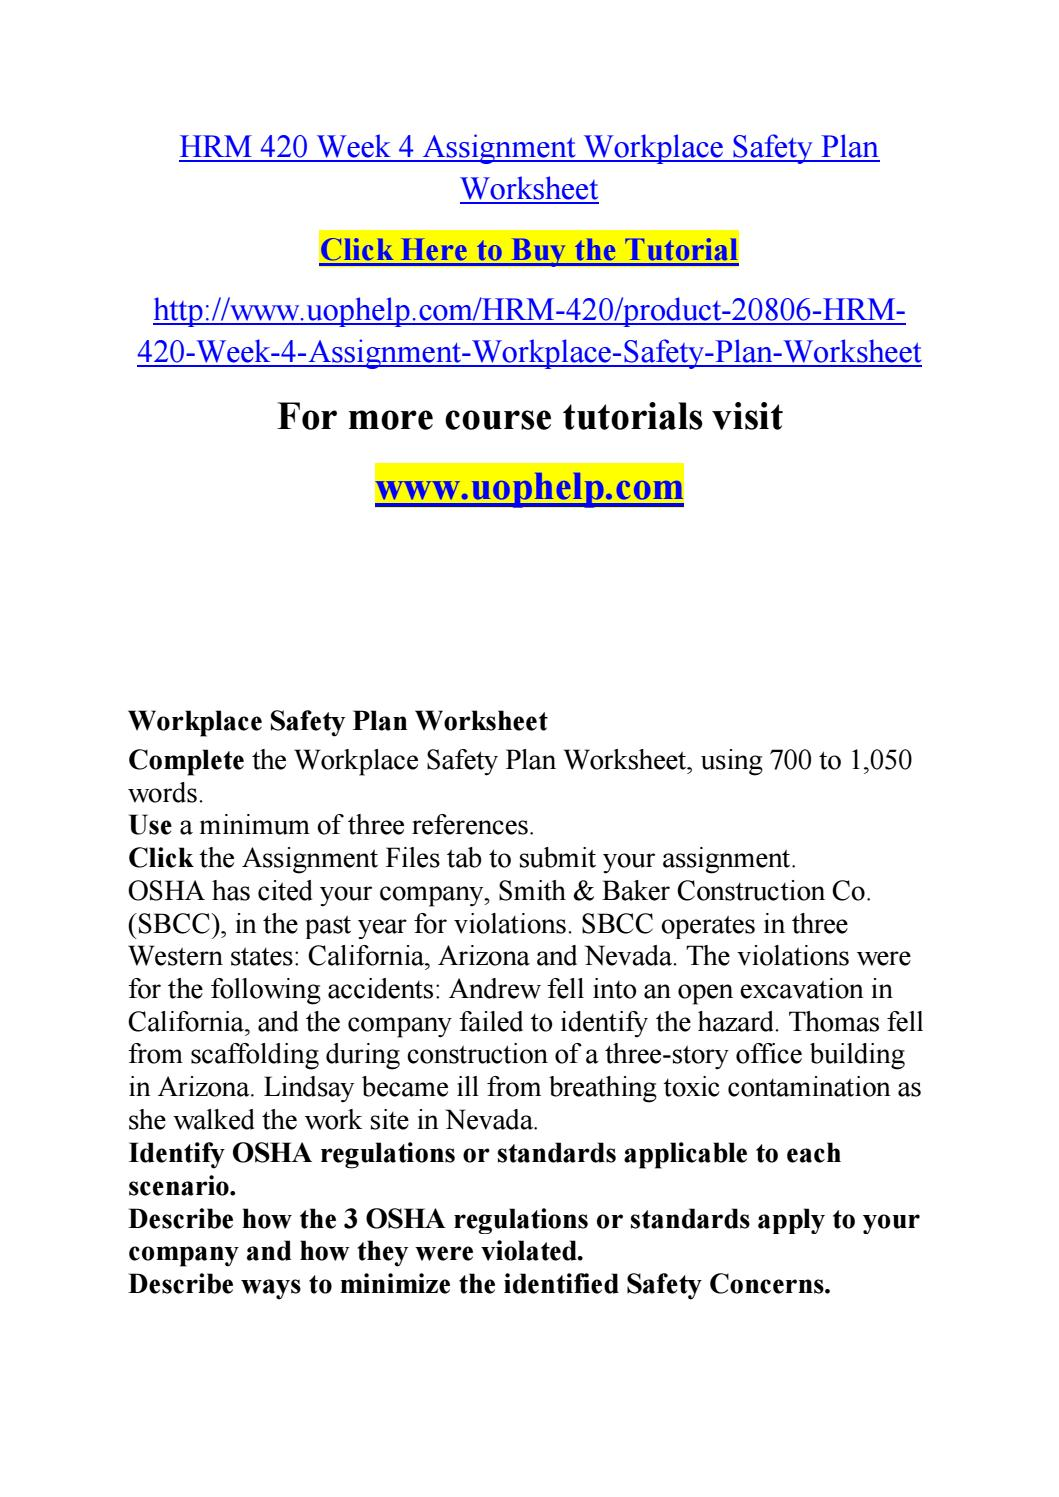 Worksheets Safety Plan Worksheet hrm 420 week 4 assignment workplace safety plan worksheet by jabbaree136 issuu